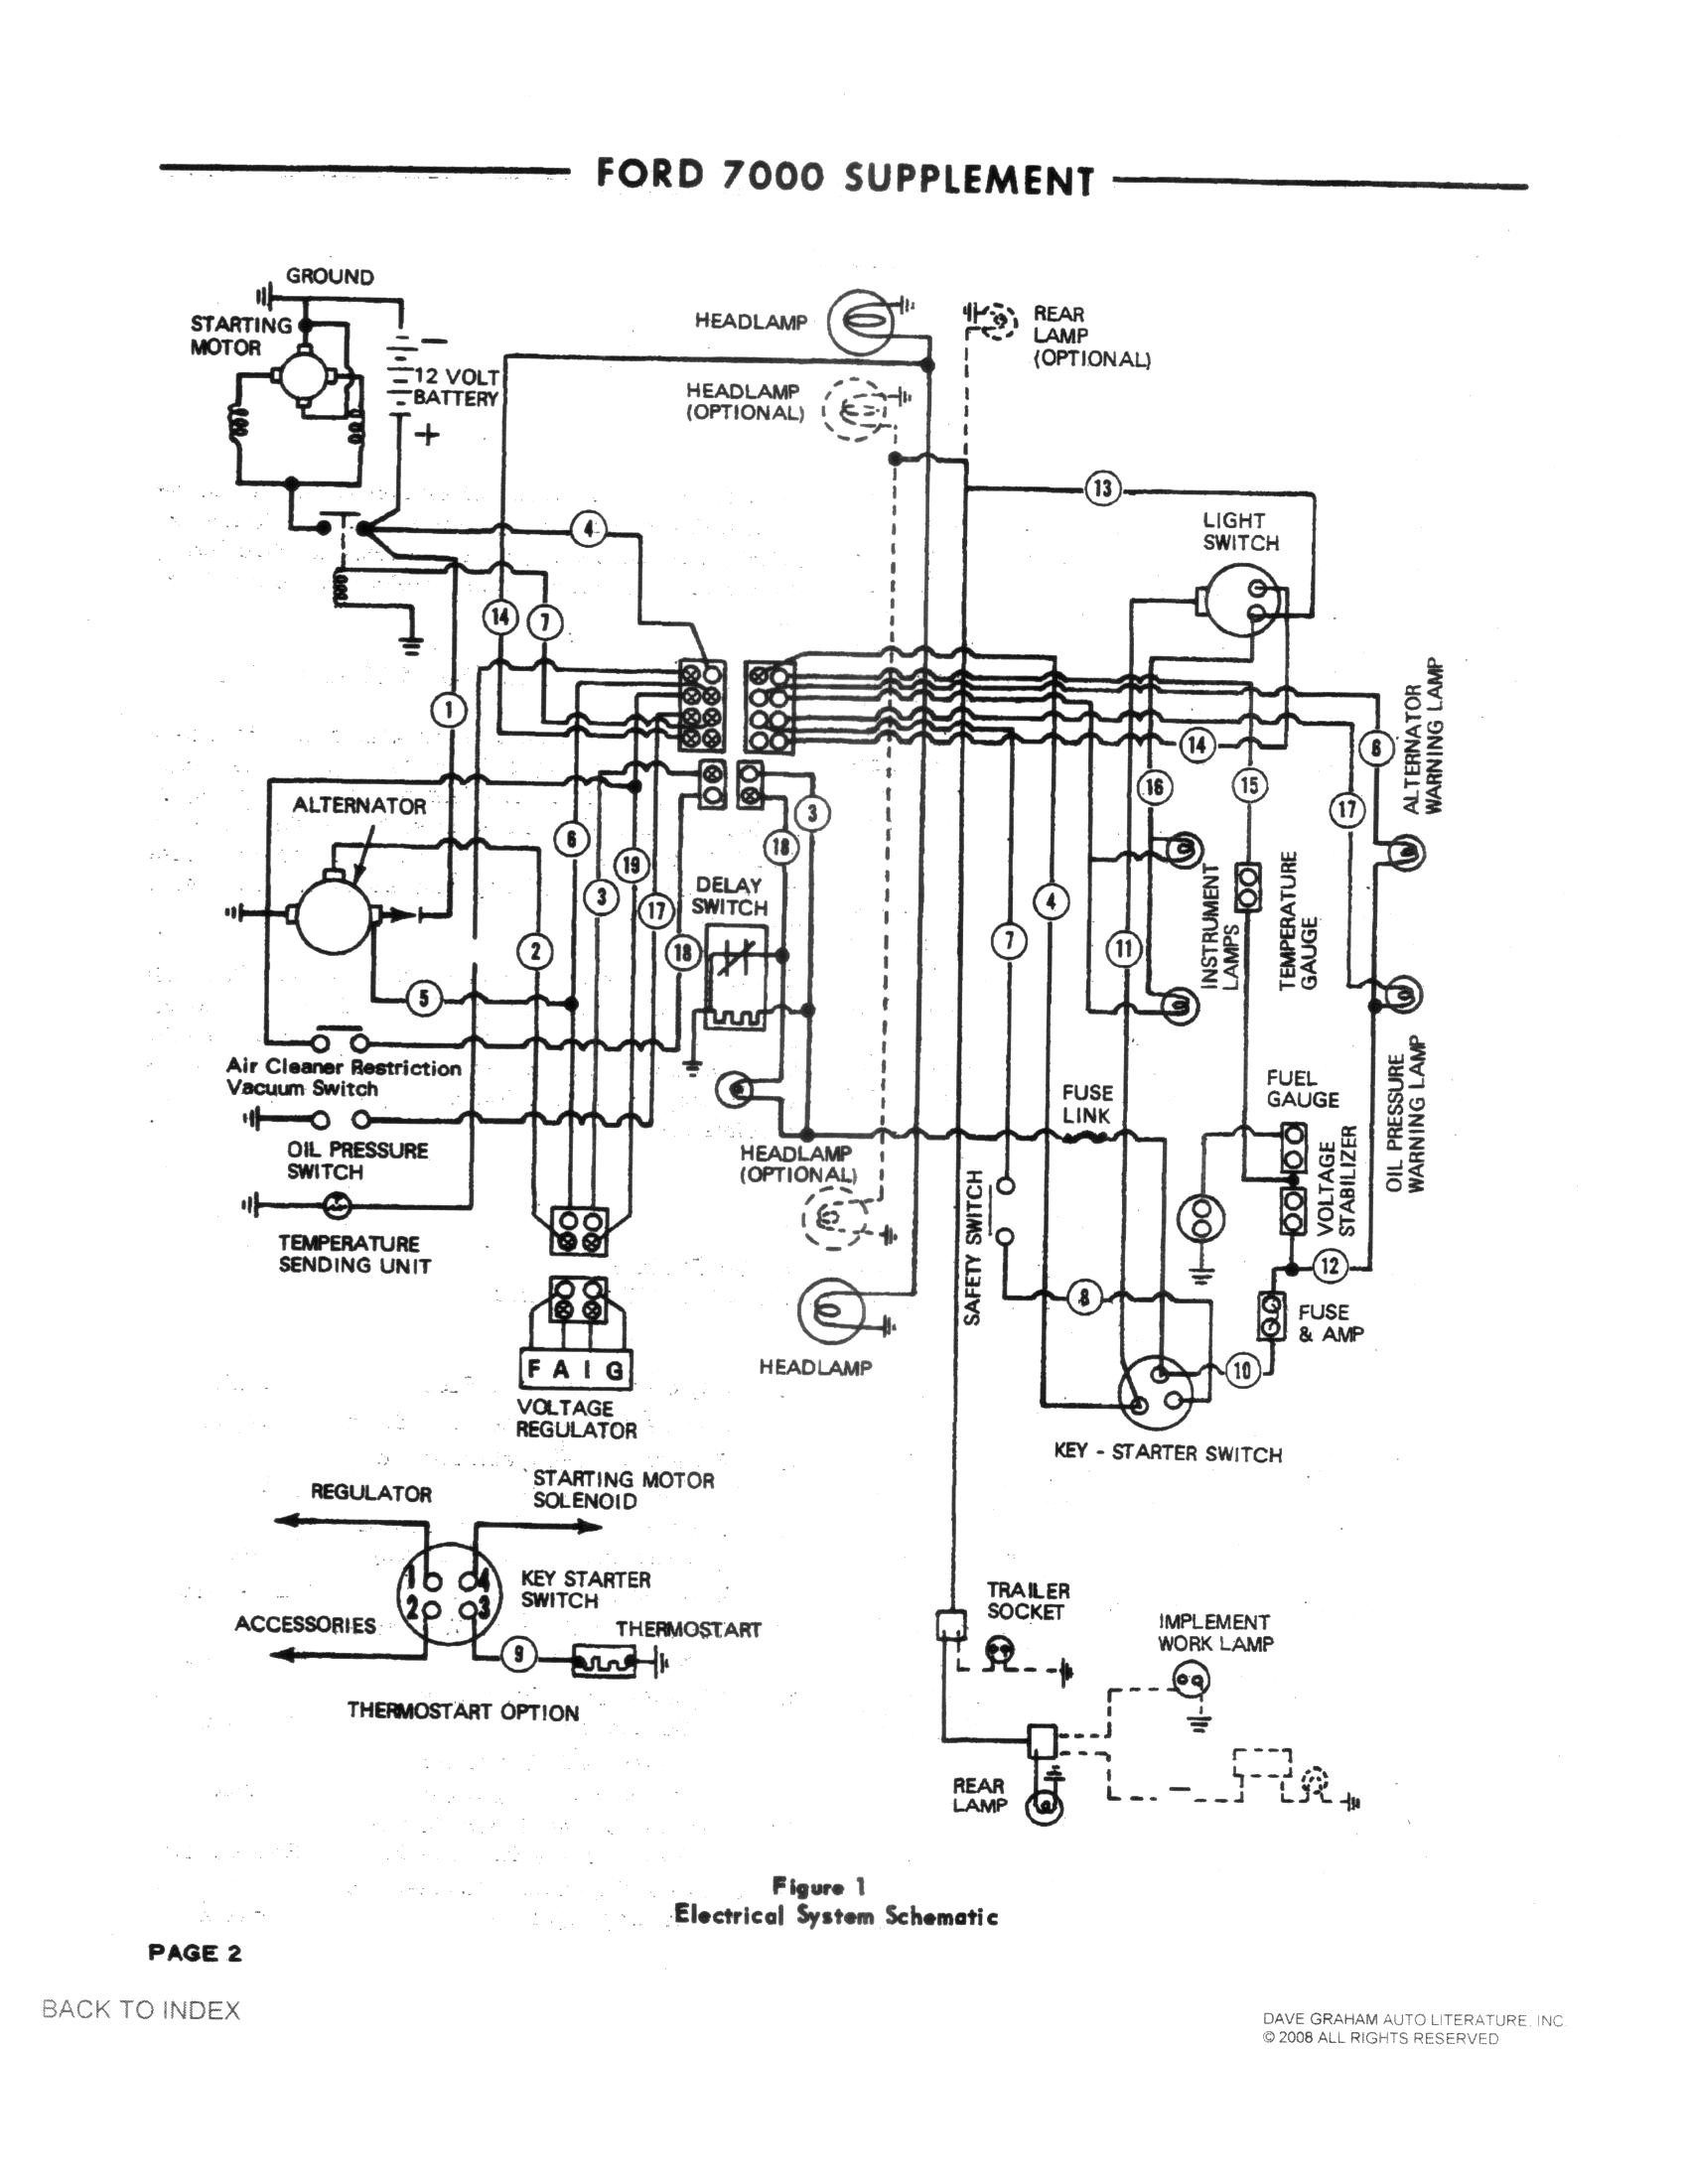 4600 Ford Tractor Wiring Diagram Schema Img Diesel 3600 Library 600